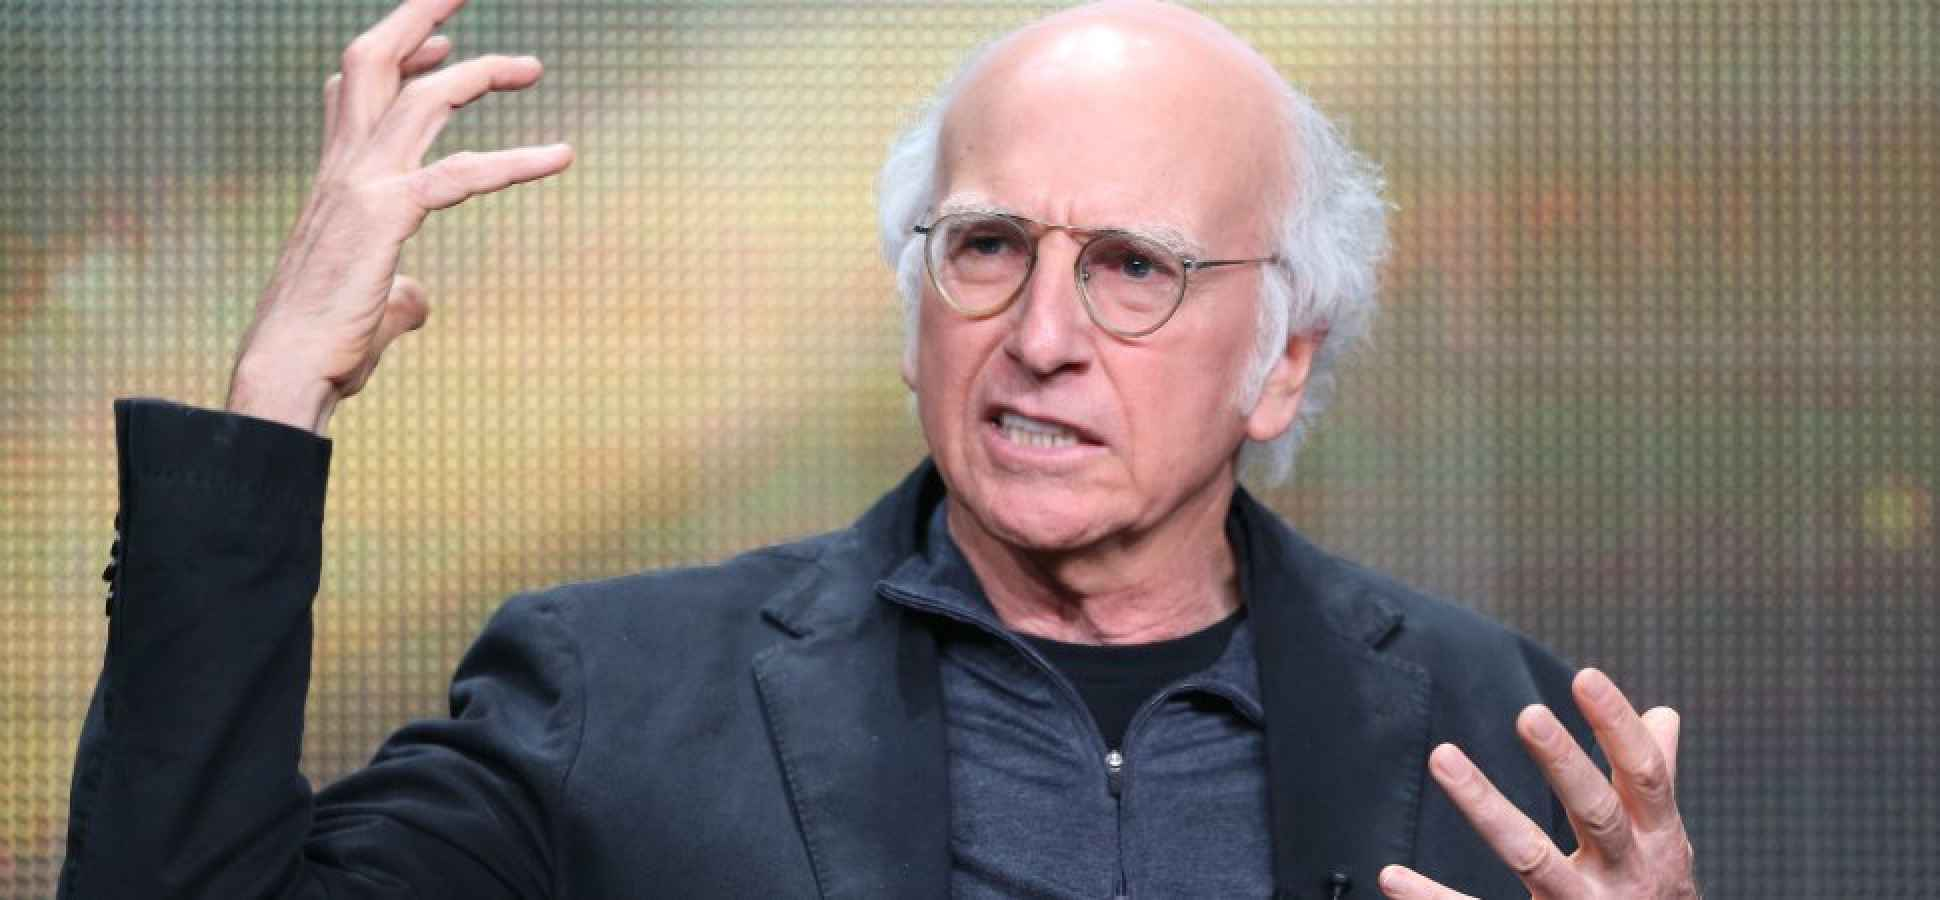 8 Quotes of Painful But Funny Human Insight From Comic Genius Larry David